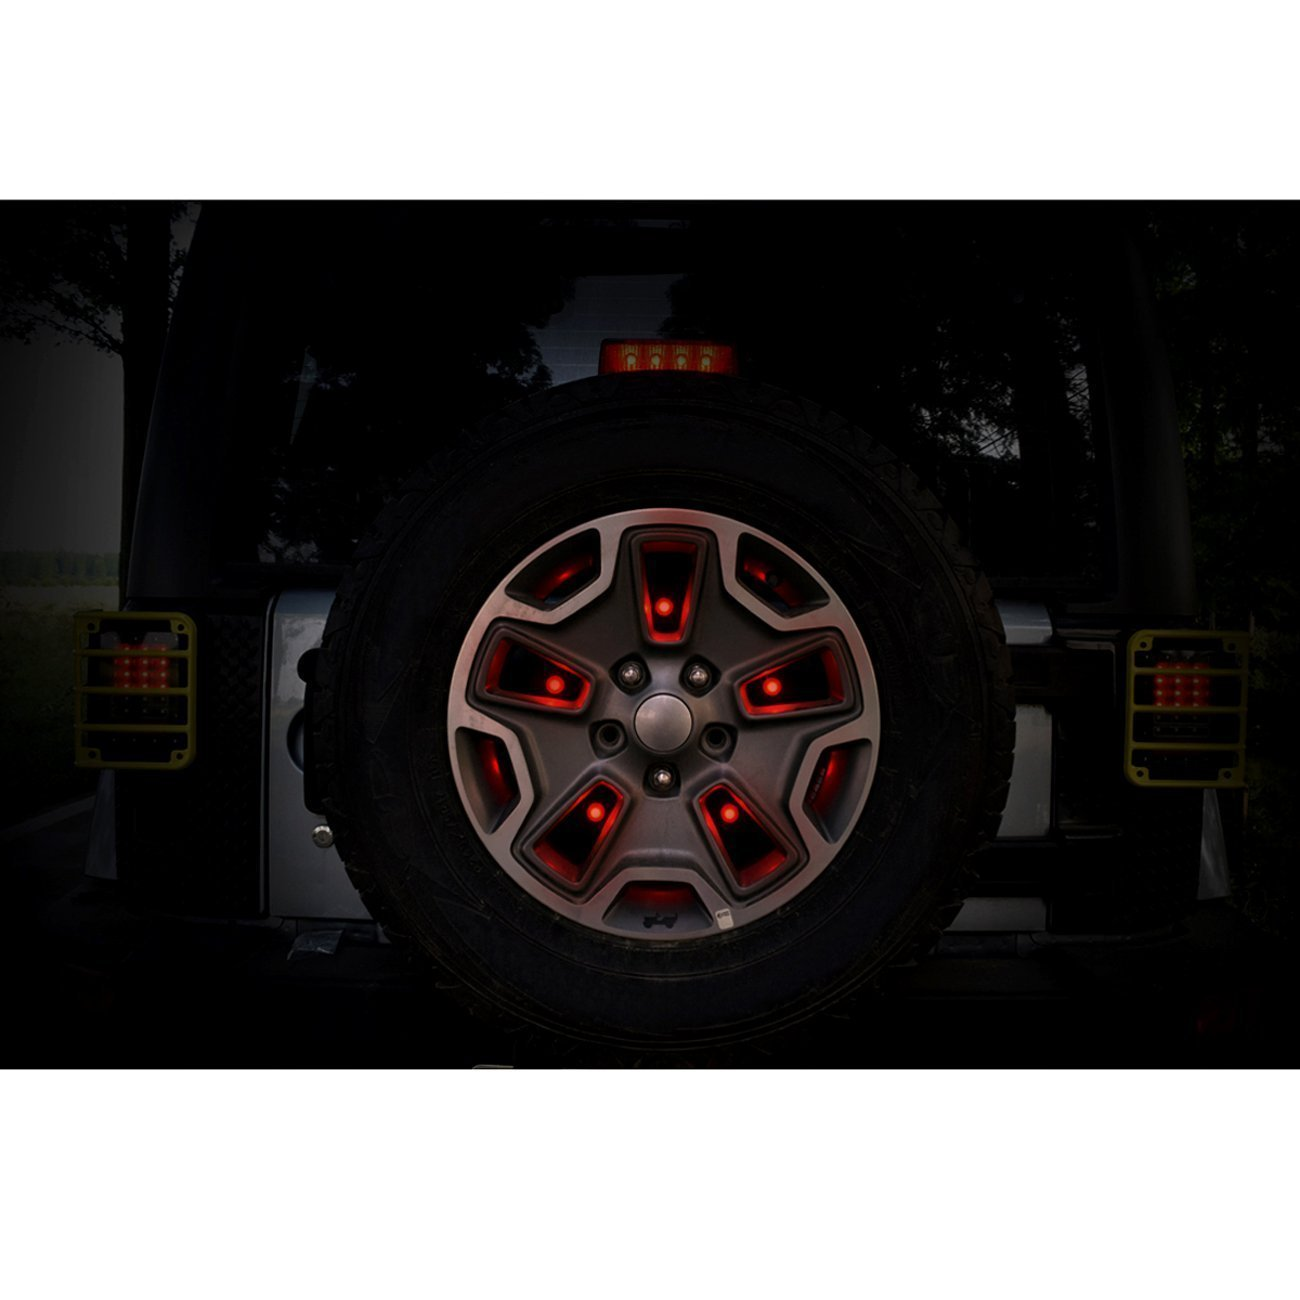 LED Red Spare Tire Brake Light for Jeep Wrangler JK 07-17